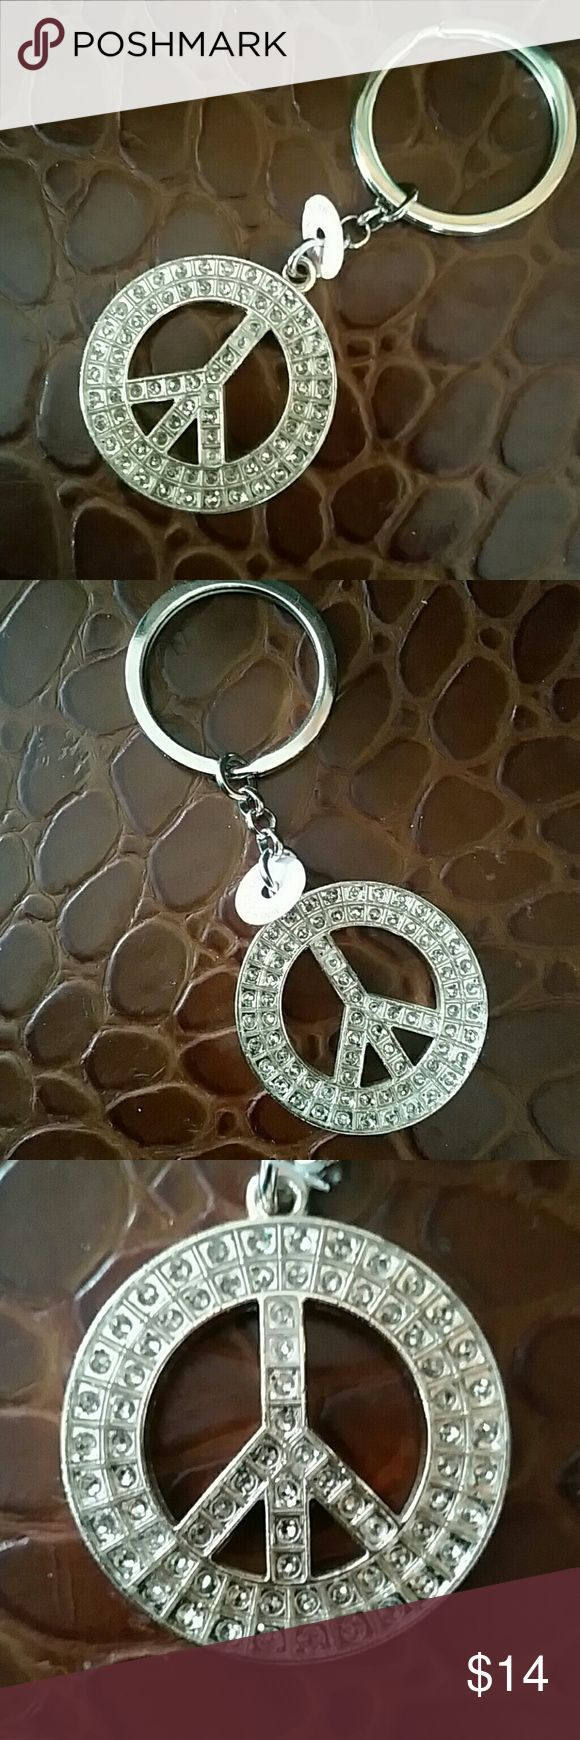 "NWT PEACE SYMBOL GLAM Rhinestone key chain NWT PEACE SYMBOL GLAM Rhinestone key chain  Make a statement of PEACE with this glam girl stylish key chain Jewelry for your purse, keys and car! Symbol measures 1.5"" across and is jeweled on both sides Keyring measures about 1-3/8"" across Heavy duty Available in pink,clear,green, blue and purple colored rhinestone like jewels. See other listing for available colors flattered Accessories Key & Card Holders"